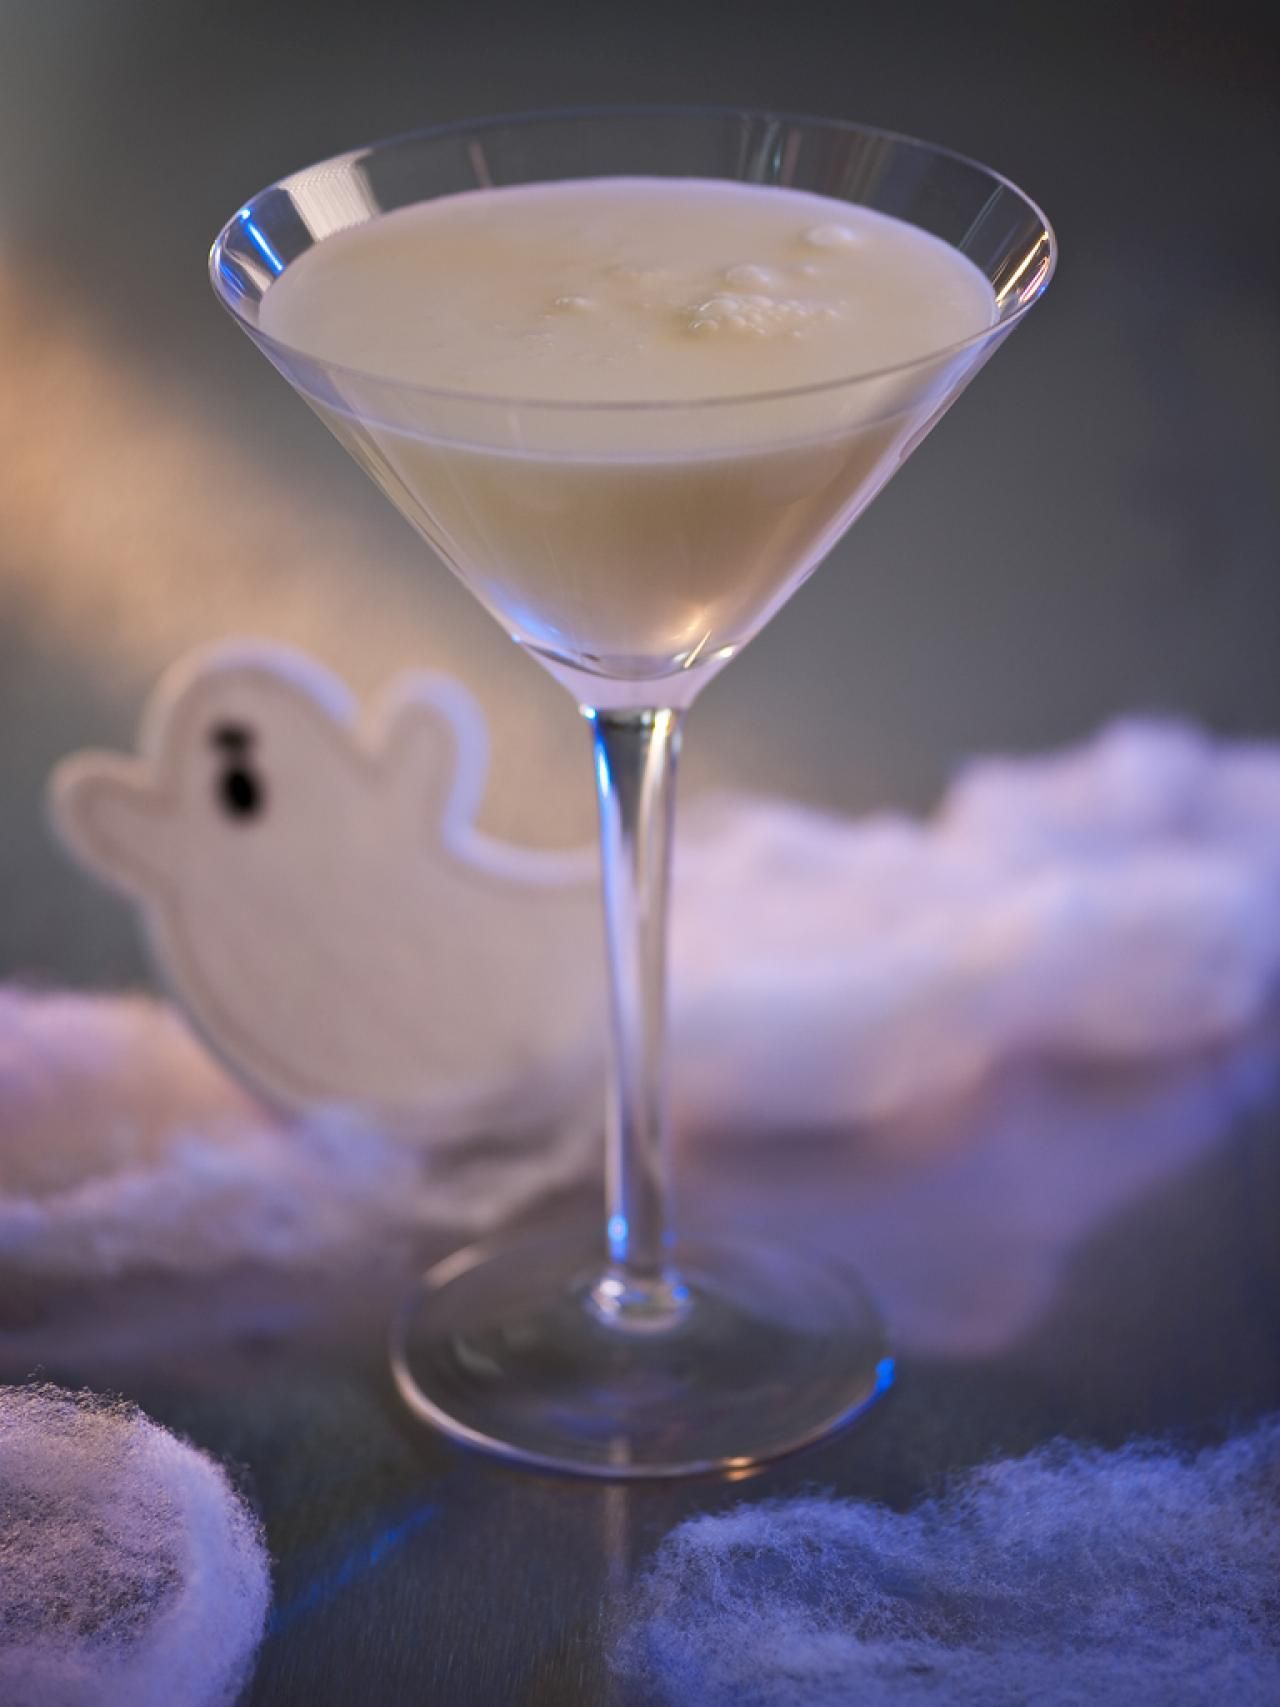 liquefied ghost cocktail your halloween guests will die for a sip of this ghostly white cocktail that tastes like a grown up milkshake mix vanilla simple